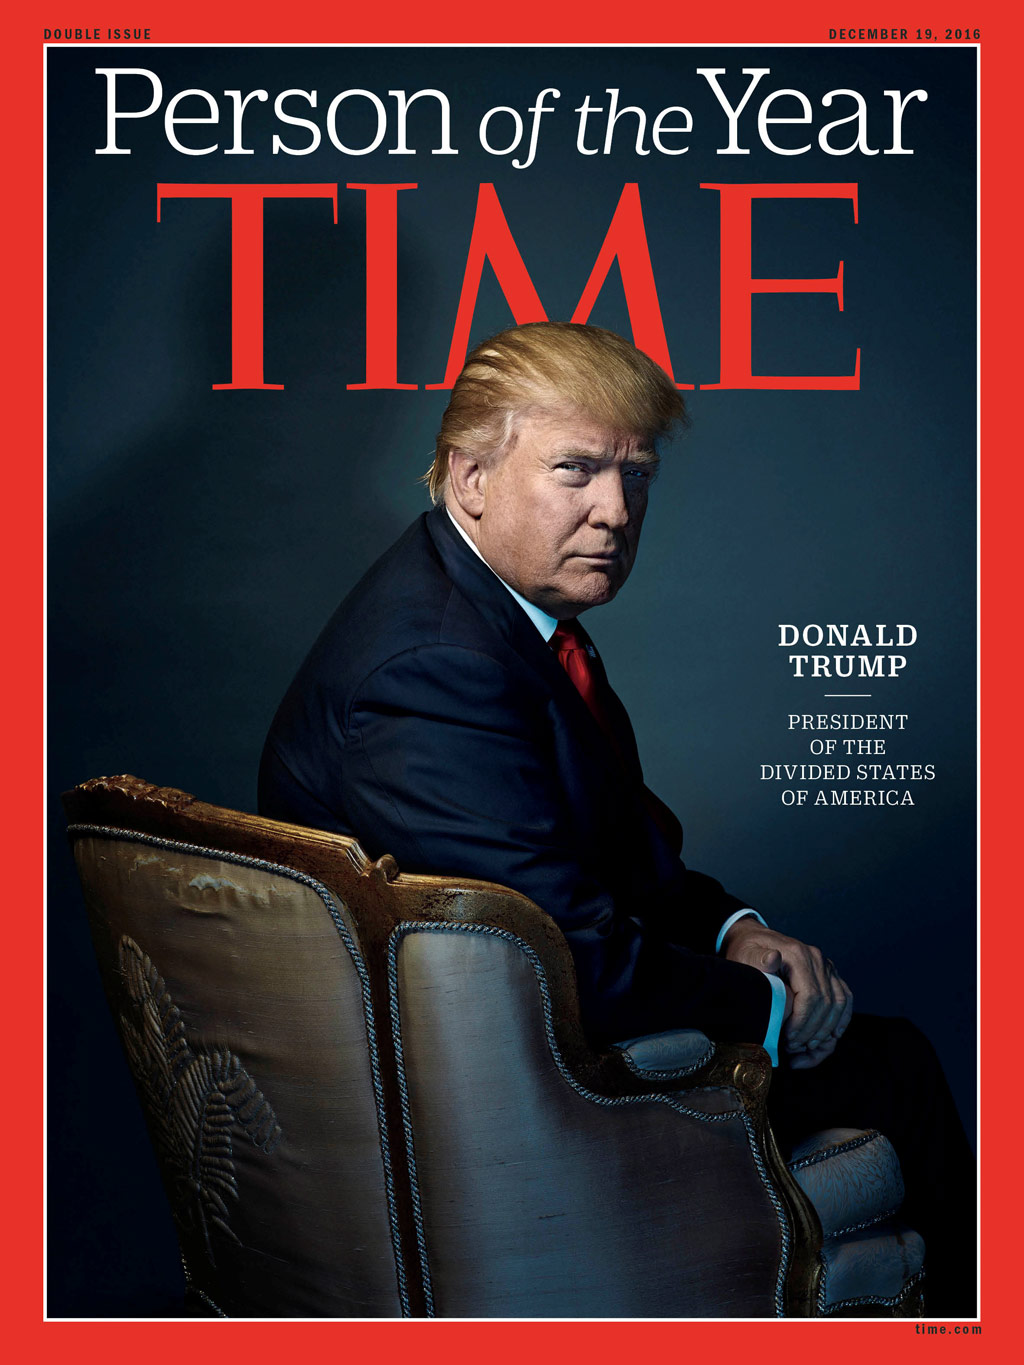 Donald Trump named Time magazine's 2016 Person of the Year